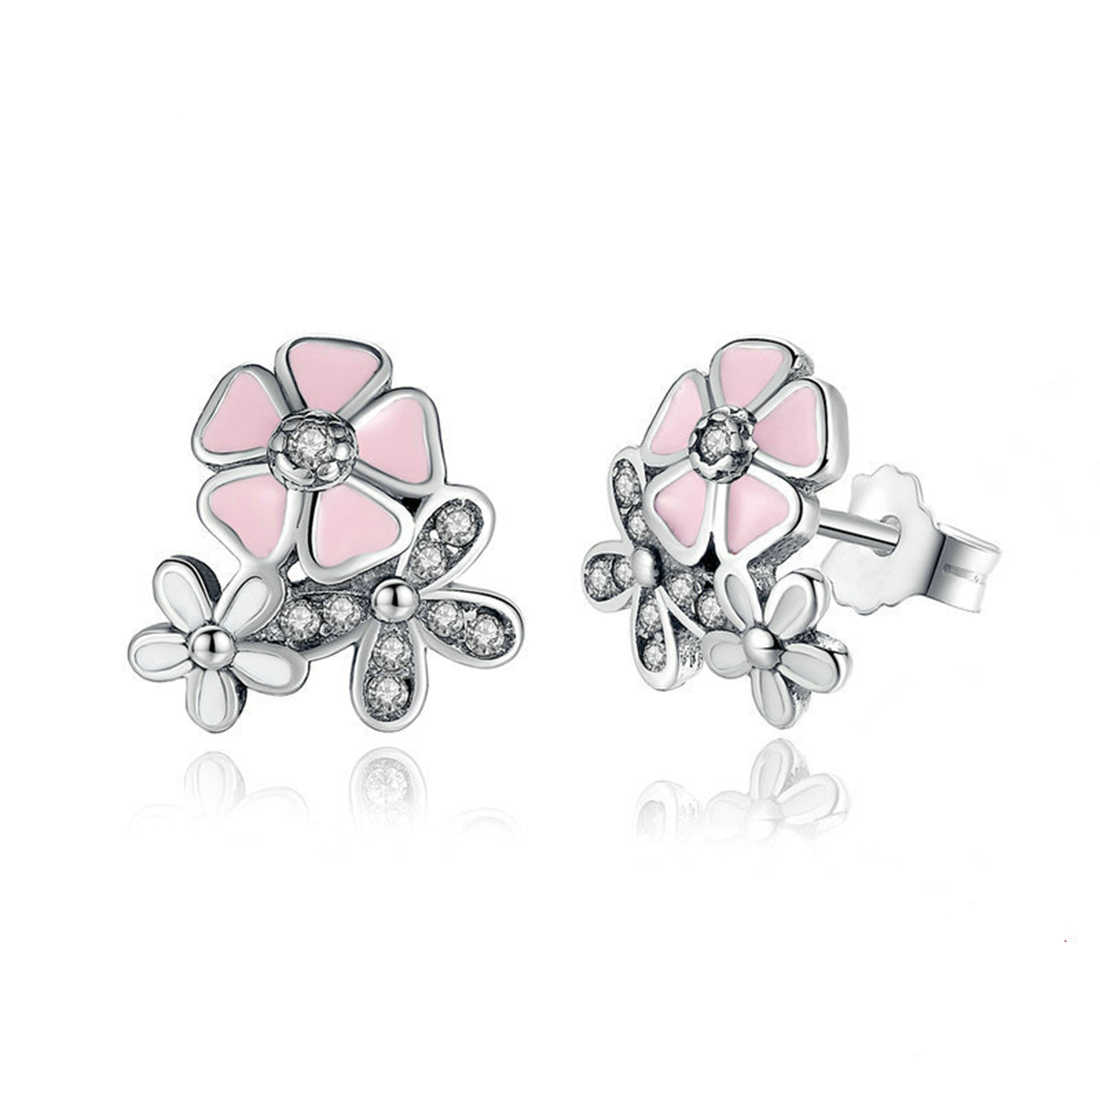 Jiayiqi 2019 New Ear Studs Jewelry Silver Earrings Flower Flower Earrings For Women